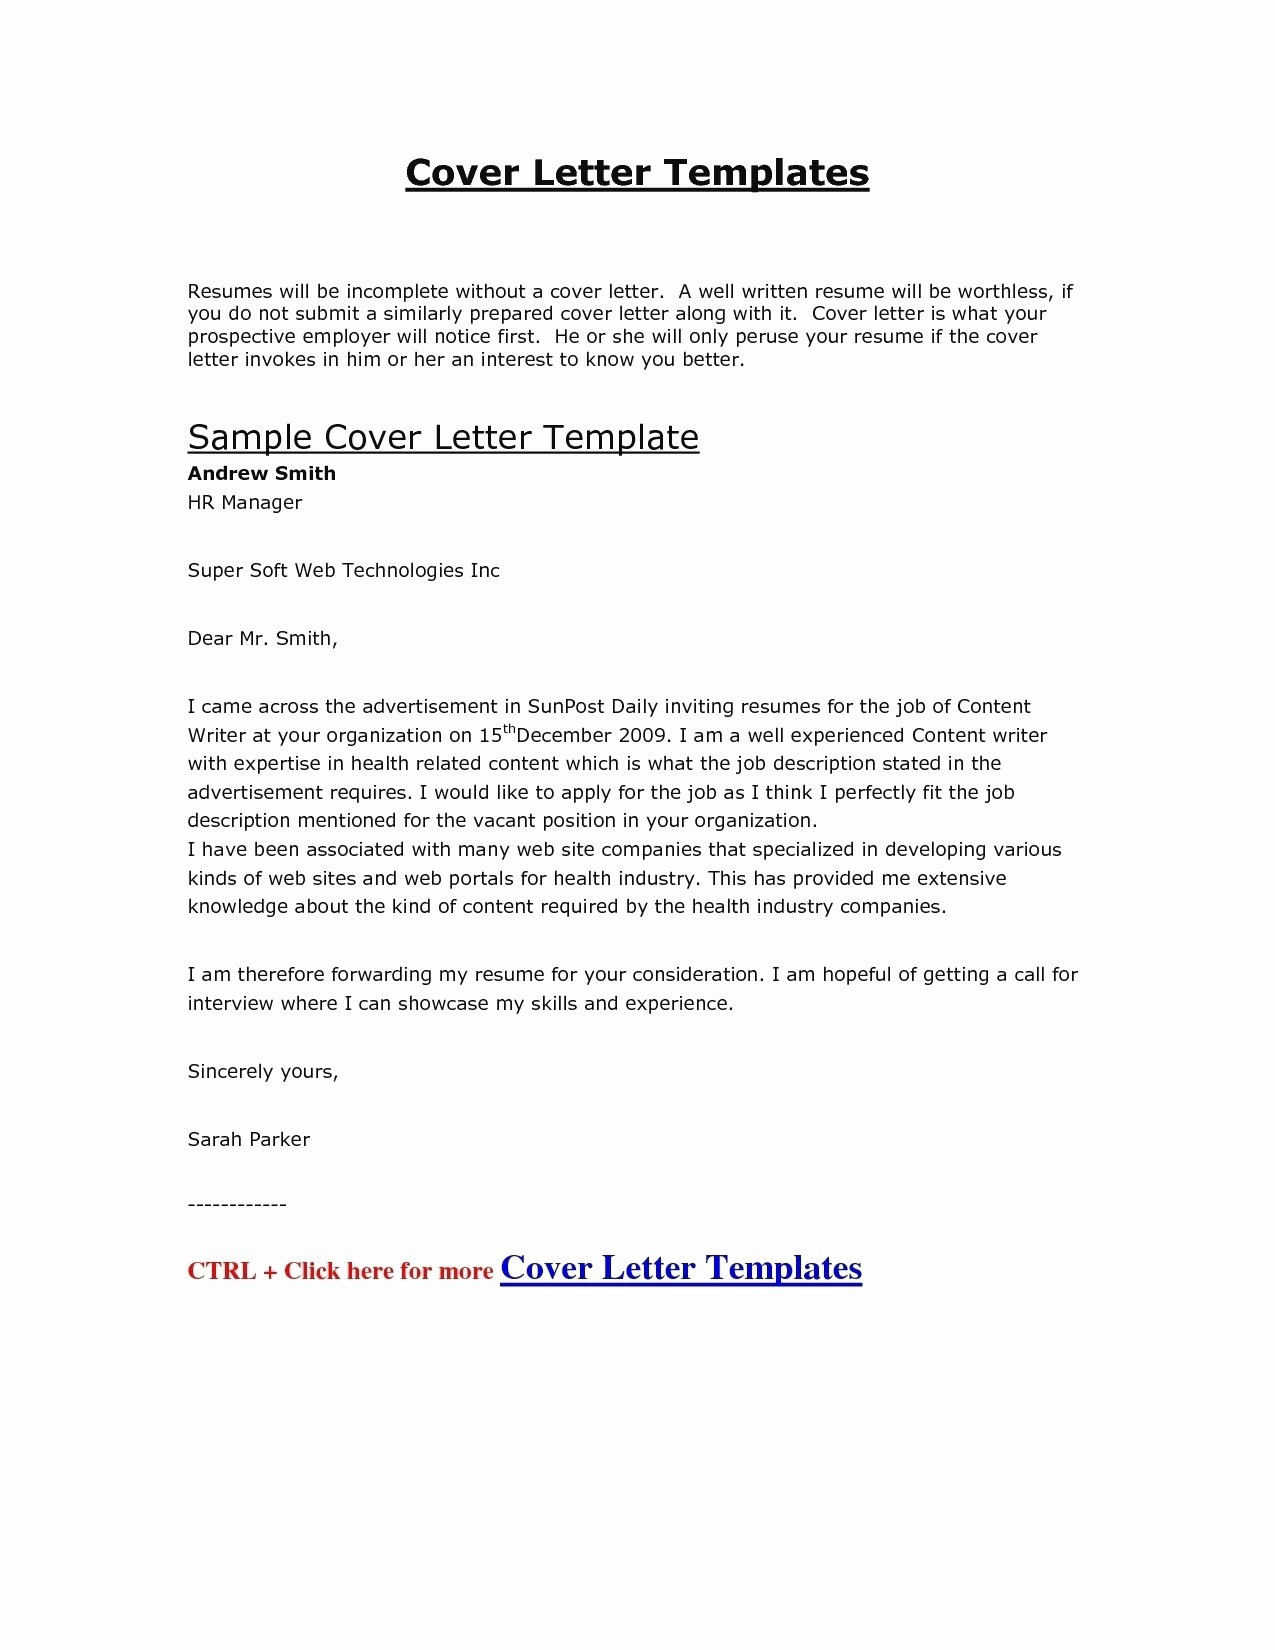 Writing A Cover Letter for A Resume - Job Apply Cover Letter Bank Letter format formal Letter Template